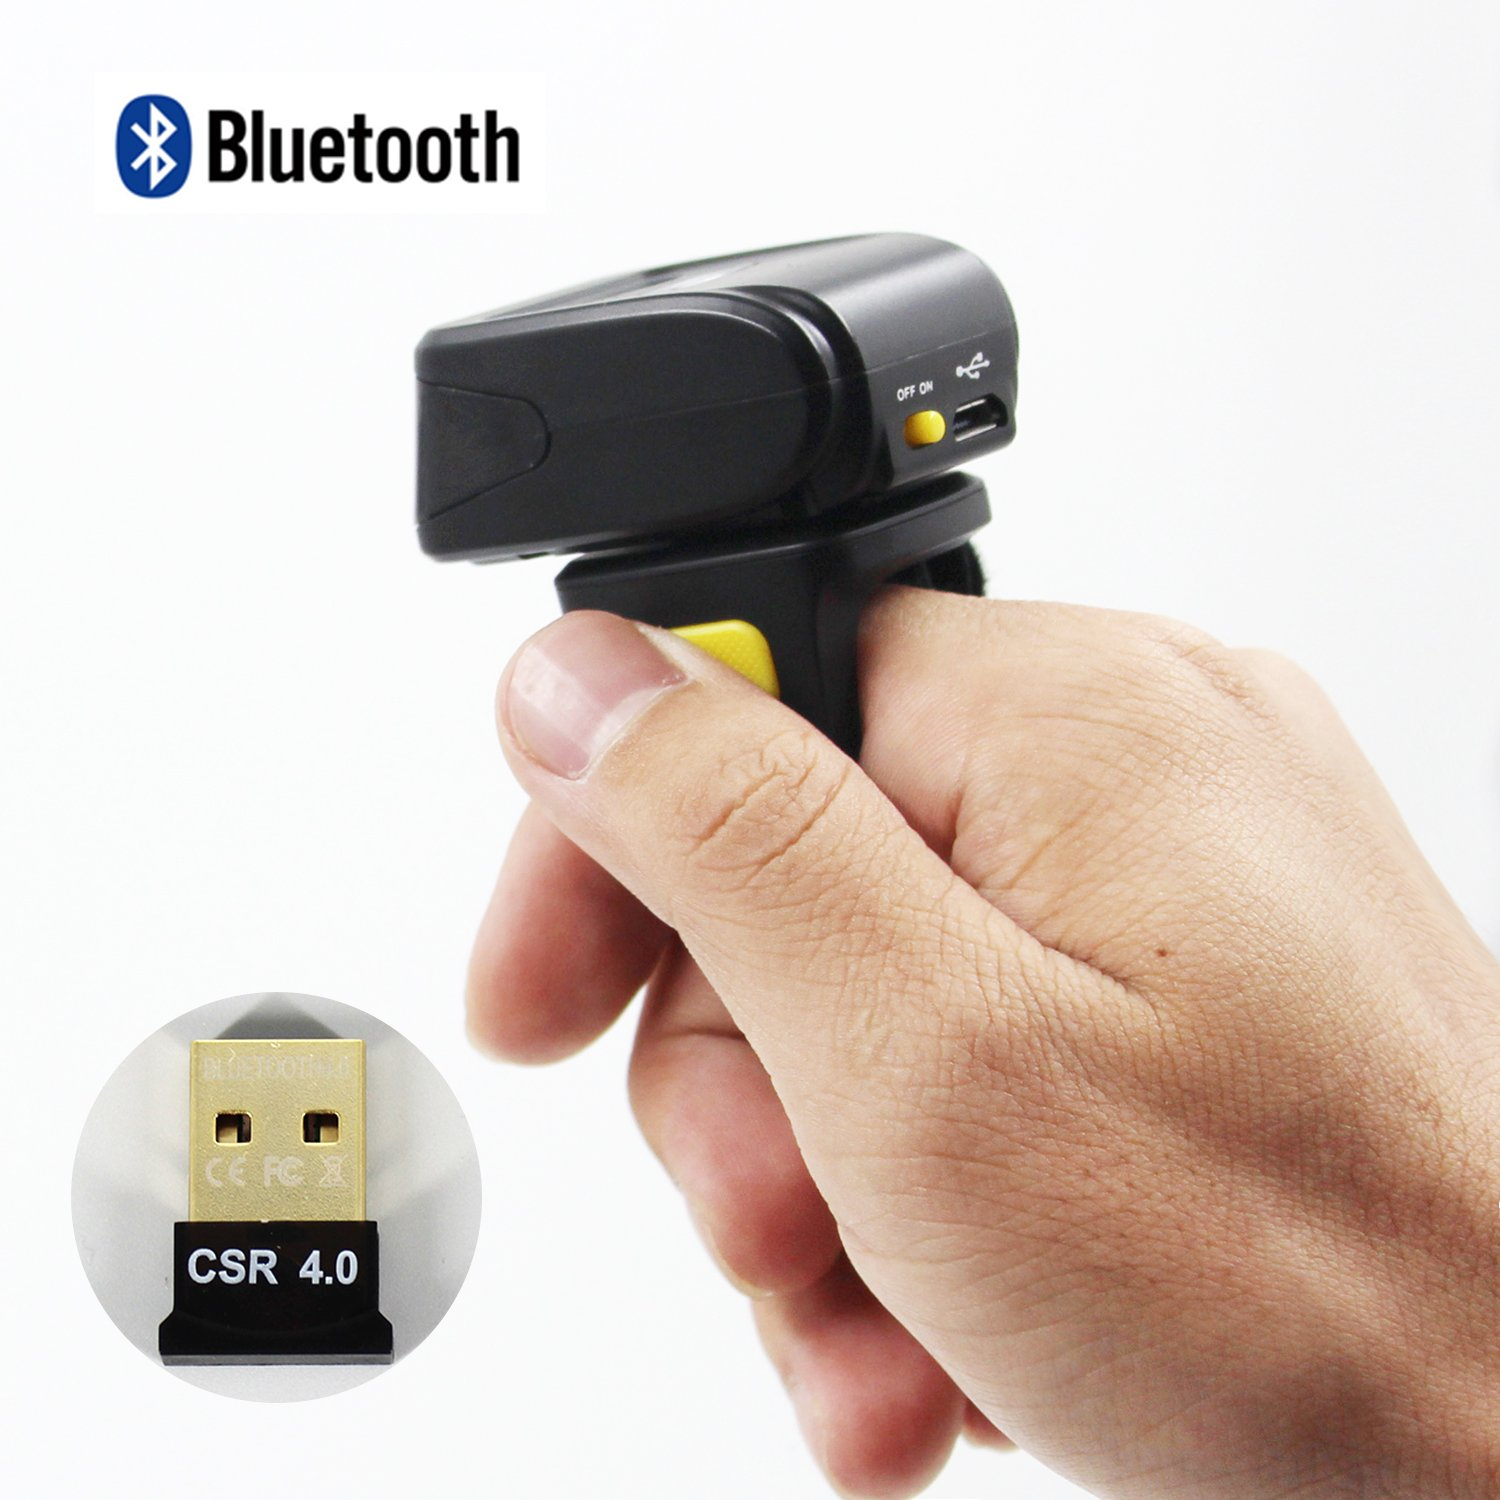 Portable Bluetooth 1D Barcode Scanner,Wearable Ring Wireless Finger Mini Bar Code Reader Compatible for Windows, Mac OS, Android 4.0+, iOS 380mA Battery